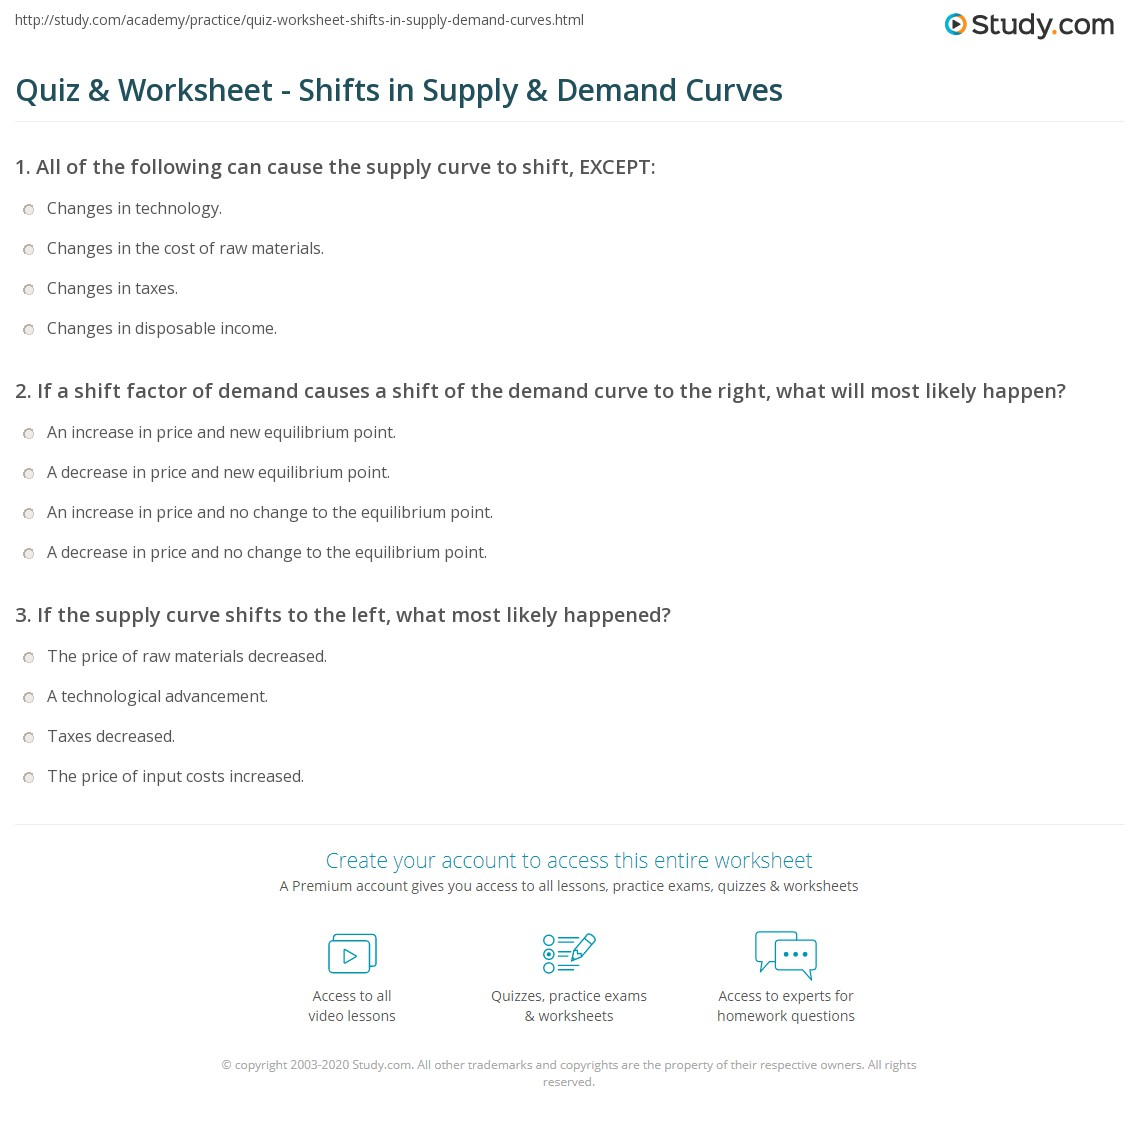 Quiz & Worksheet - Shifts in Supply & Demand Curves | Study.com